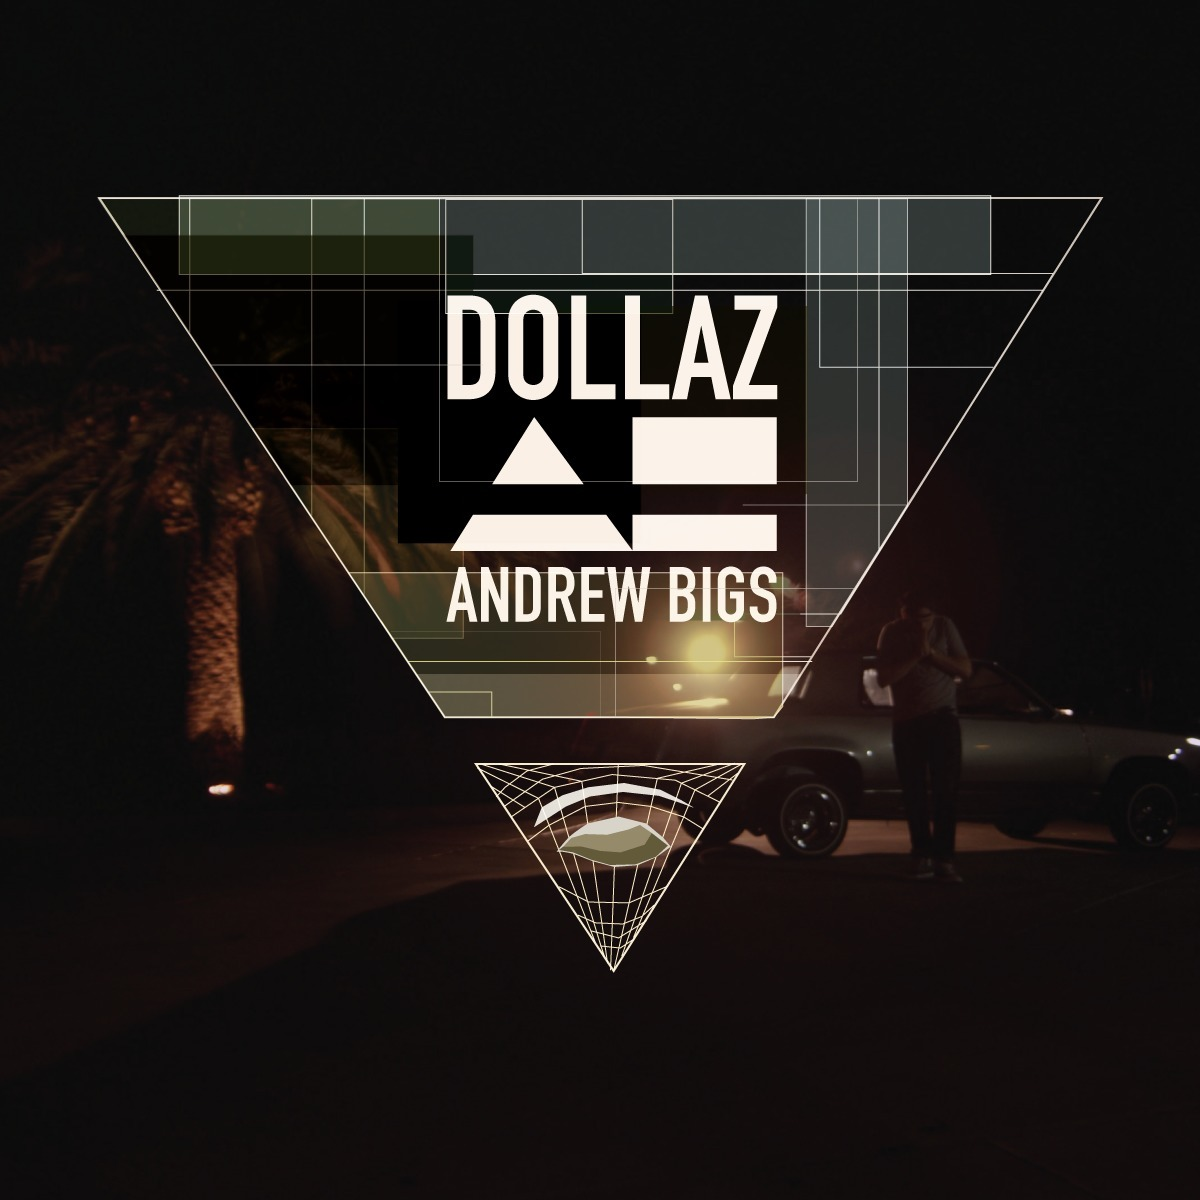 Andrew Bigs - Dollaz [Thizzler.com]